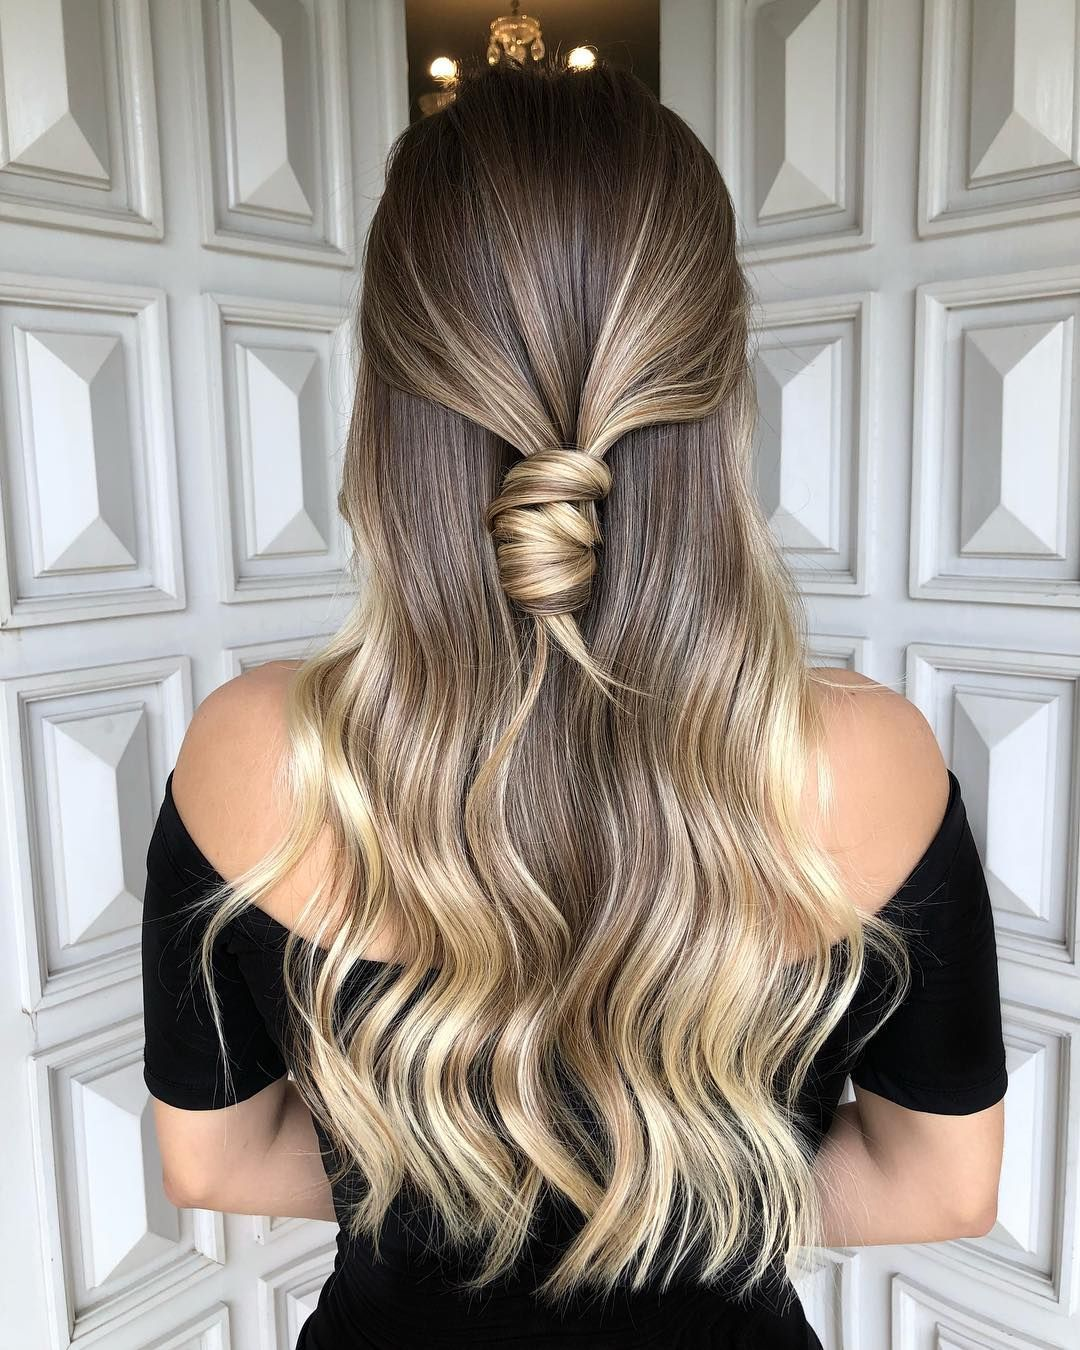 Ombre Hairstyles Simple 50 Hottest Ombre Hair Color Ideas For 2018  Ombre Hairstyles